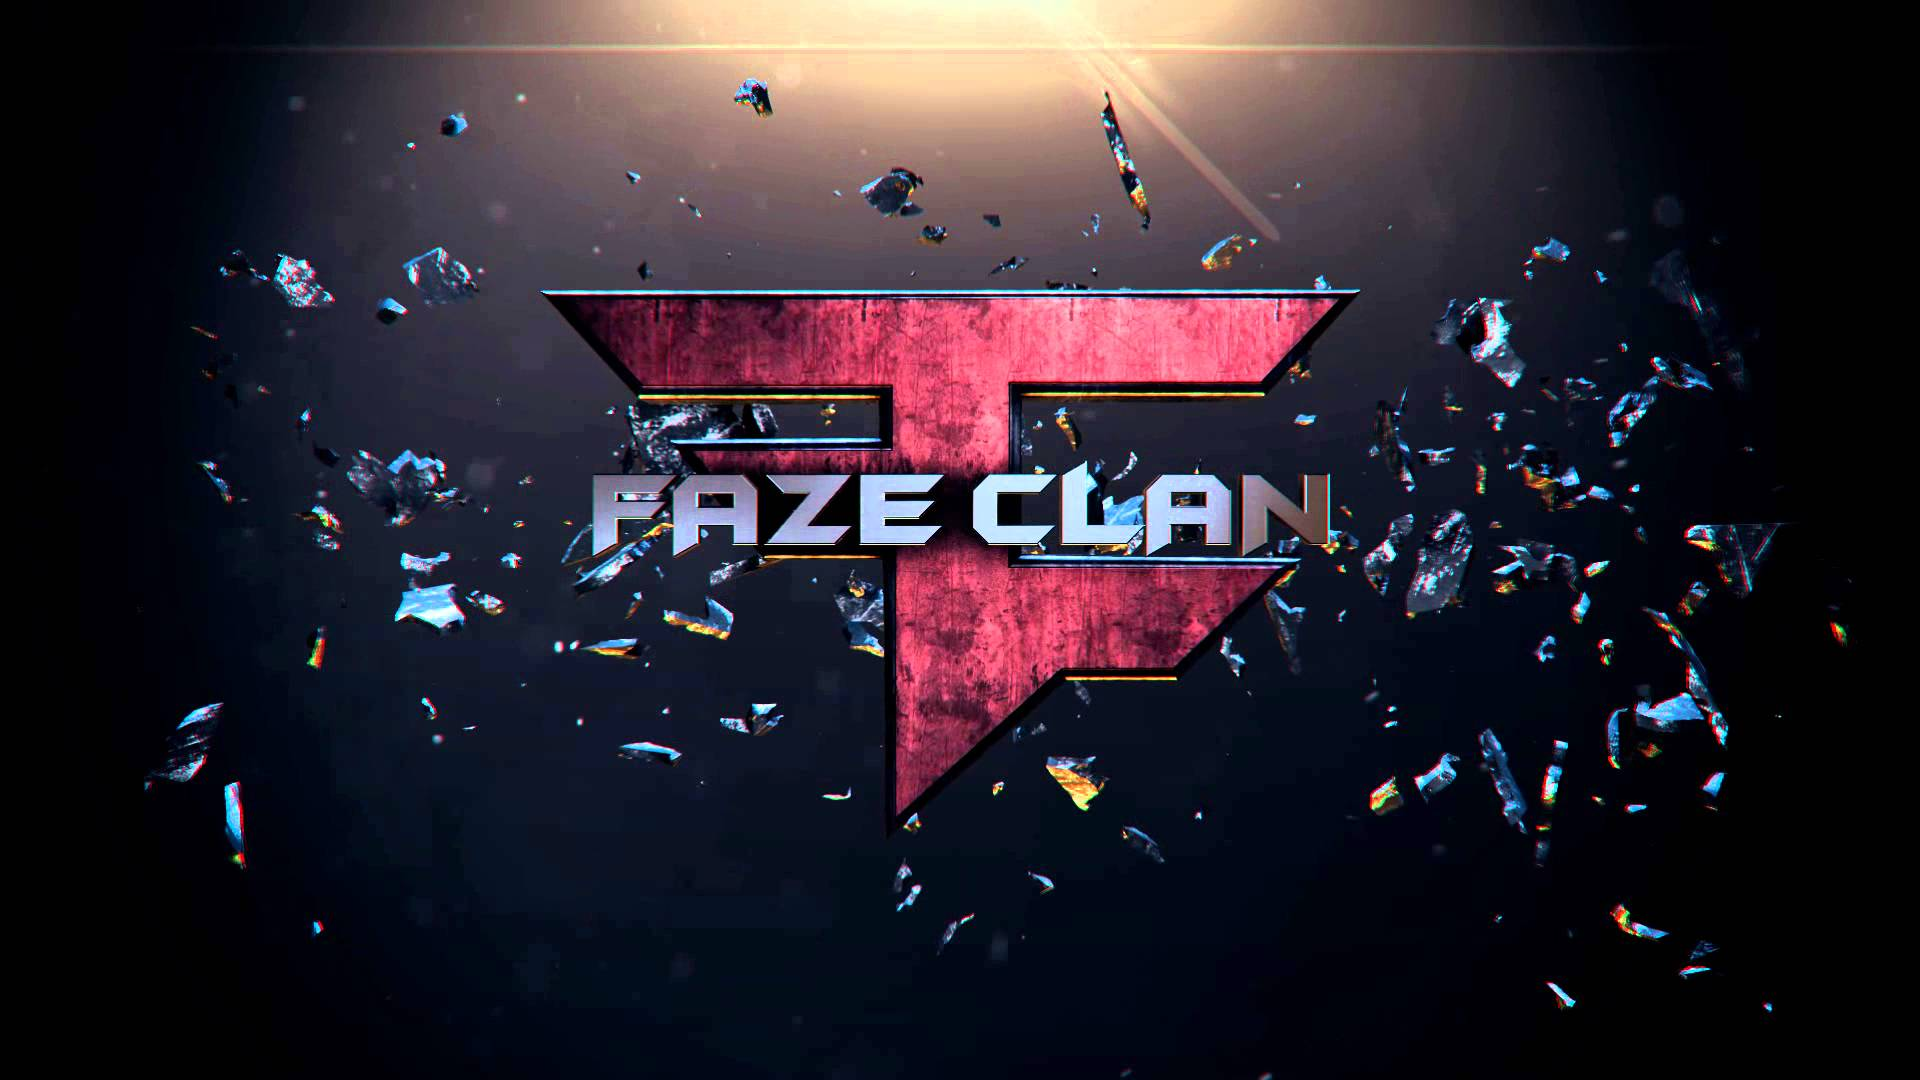 Faze Clan Wallpaper Download